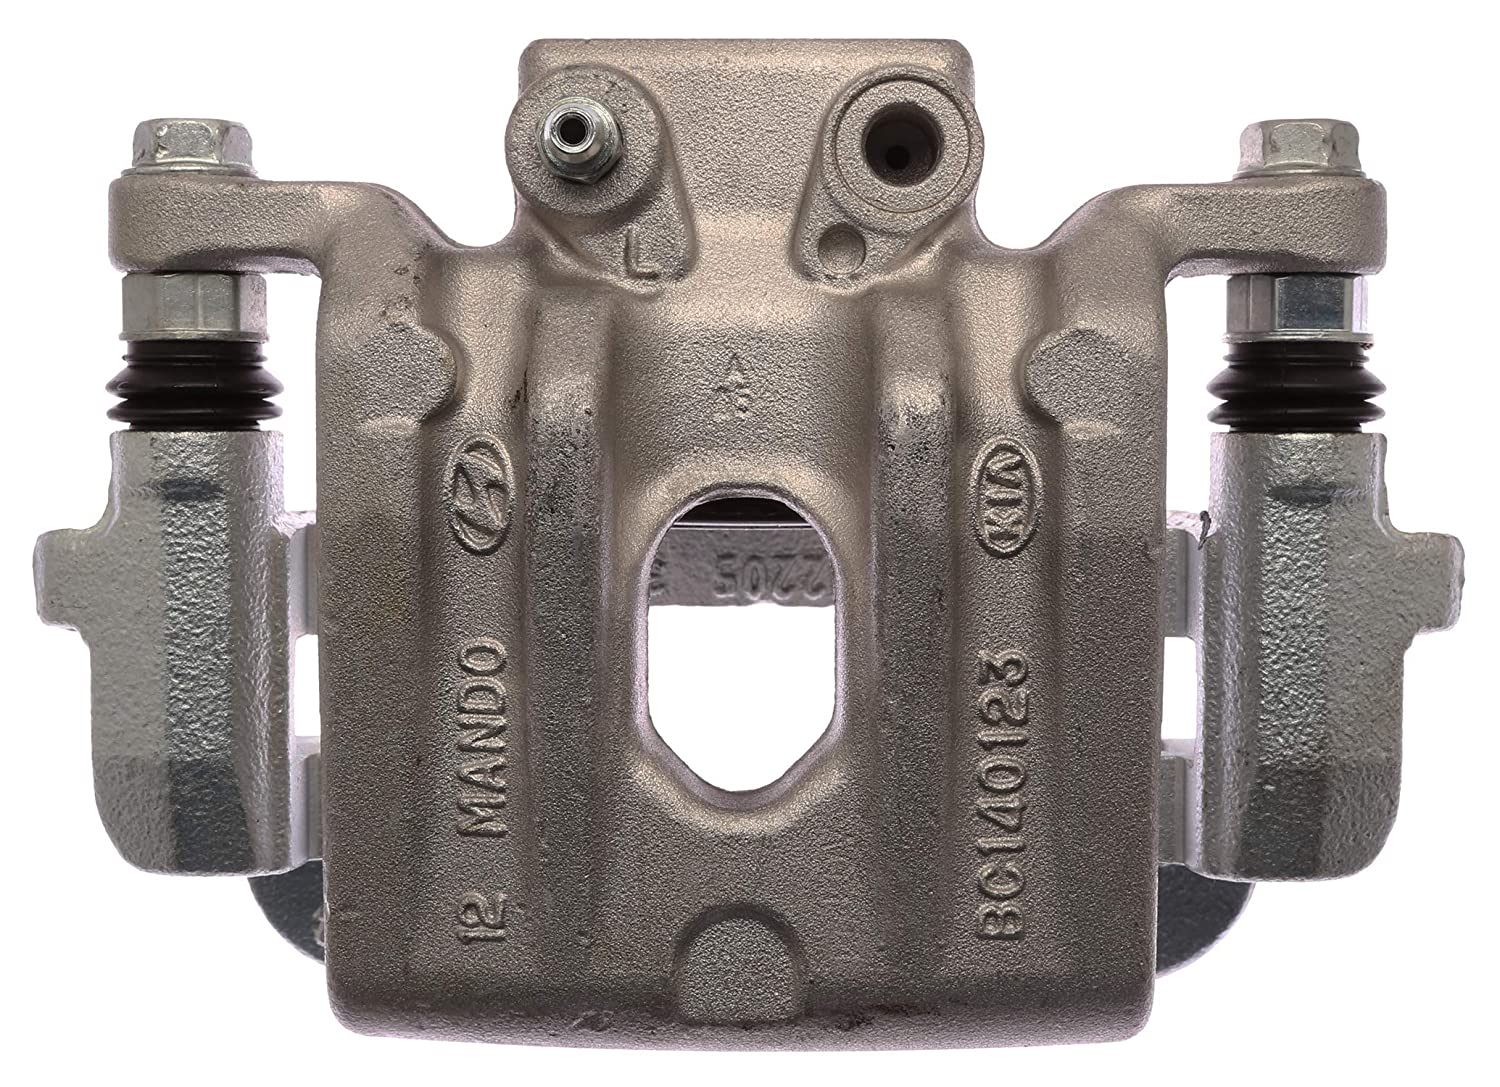 Remanufactured ACDelco 18FR12716C Professional Rear Driver Side Disc Brake Caliper Assembly Friction Ready Coated